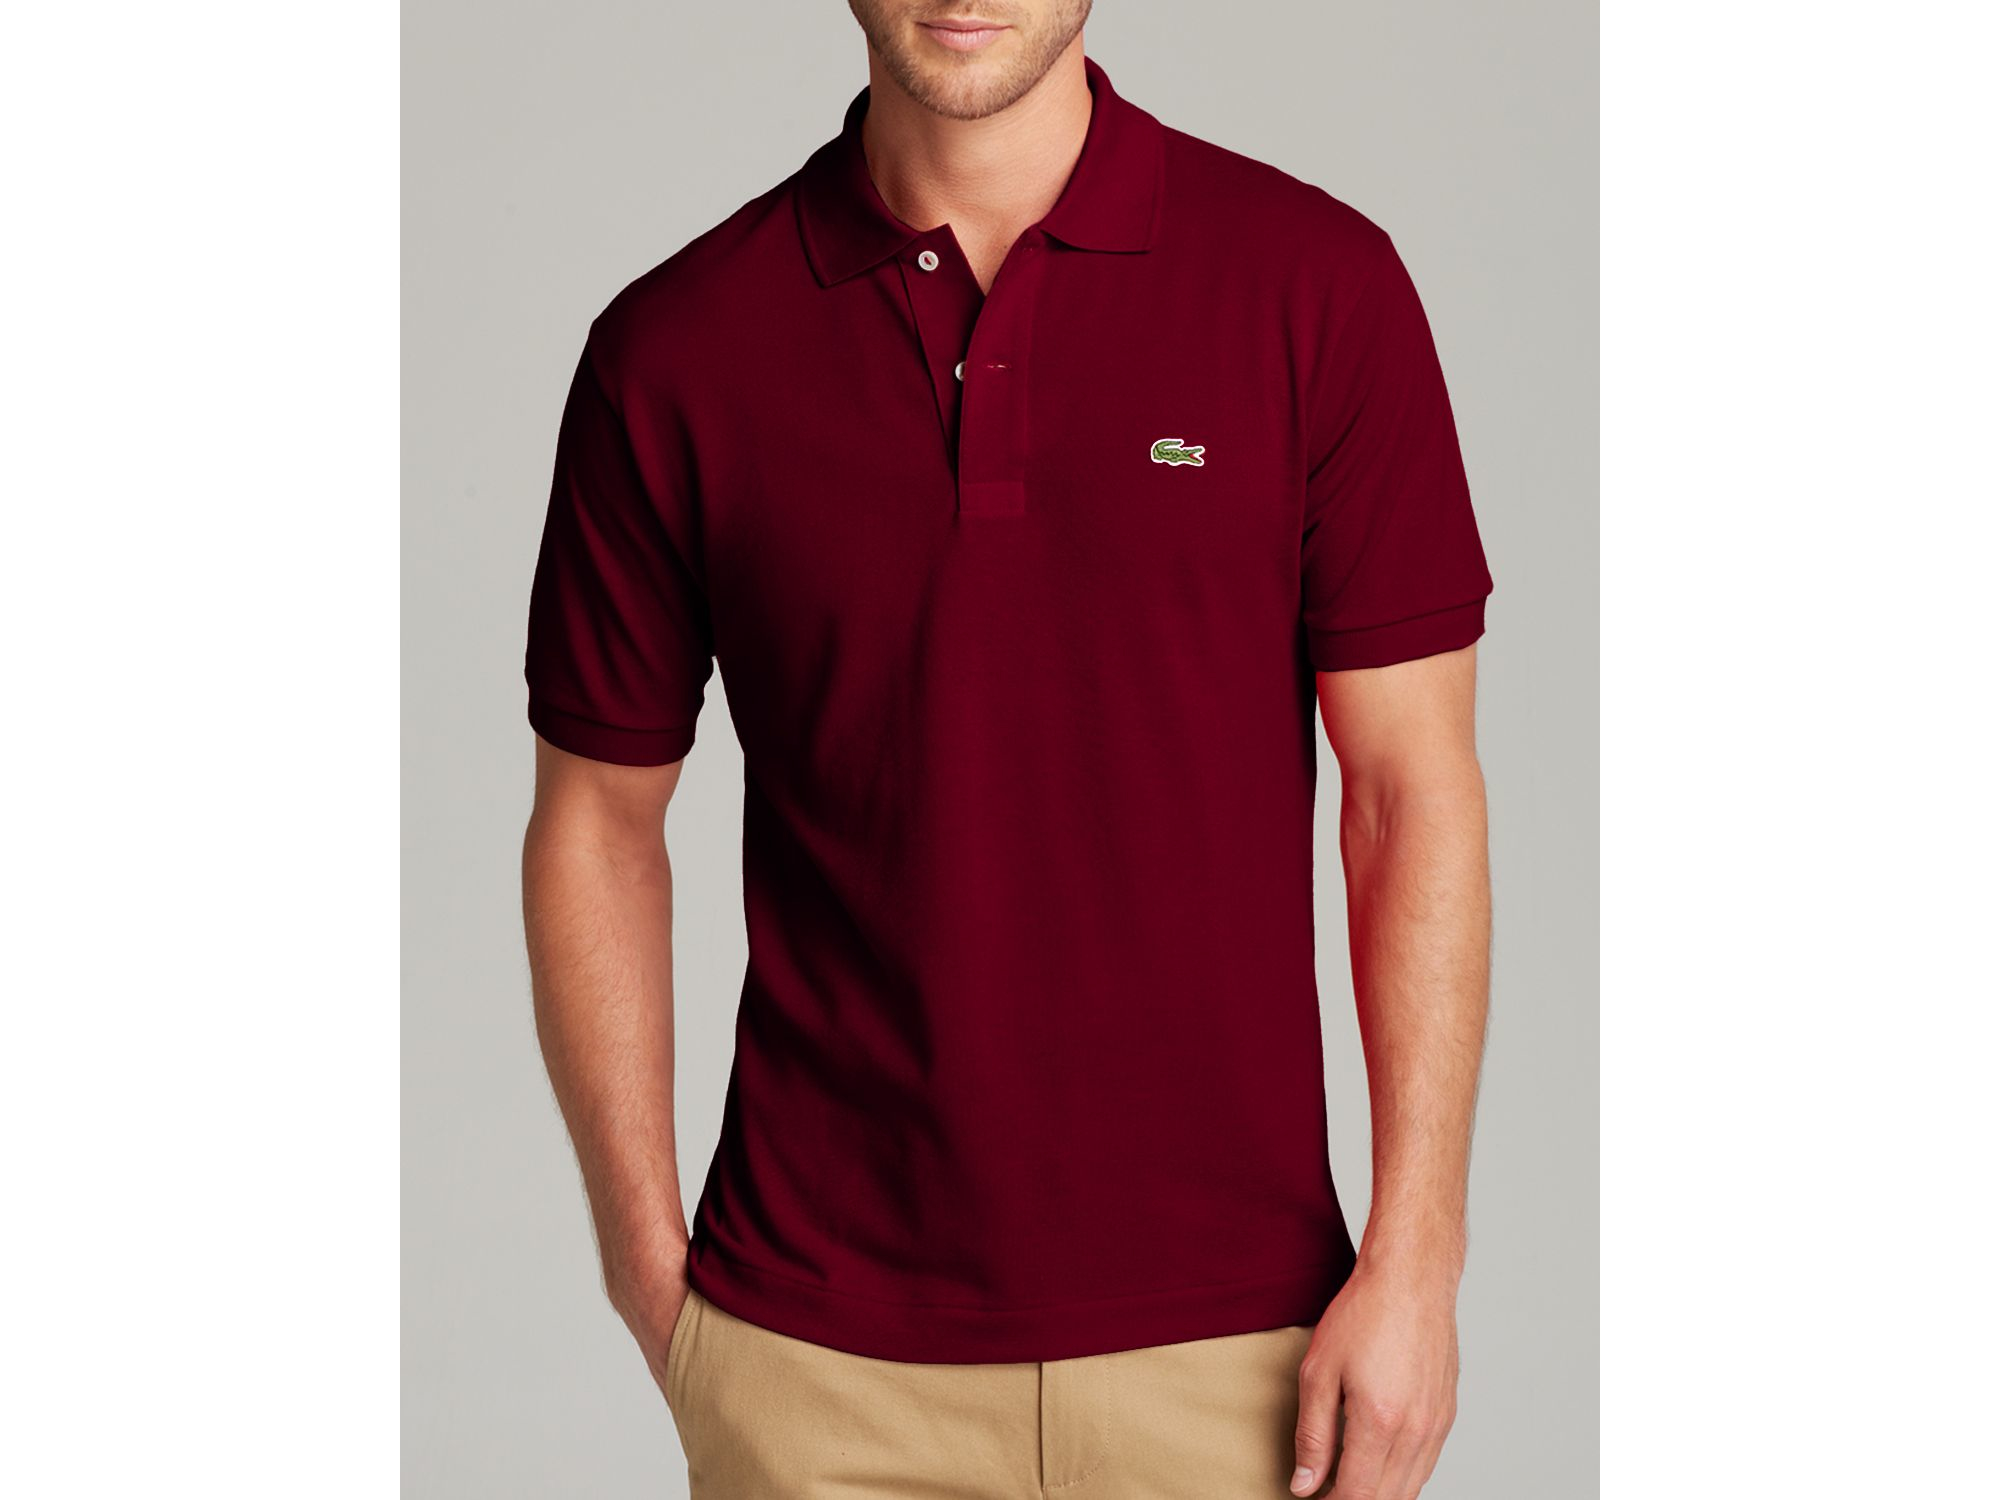 Lyst Lacoste Short Sleeve Piqu Polo Shirt Classic Fit In Purple